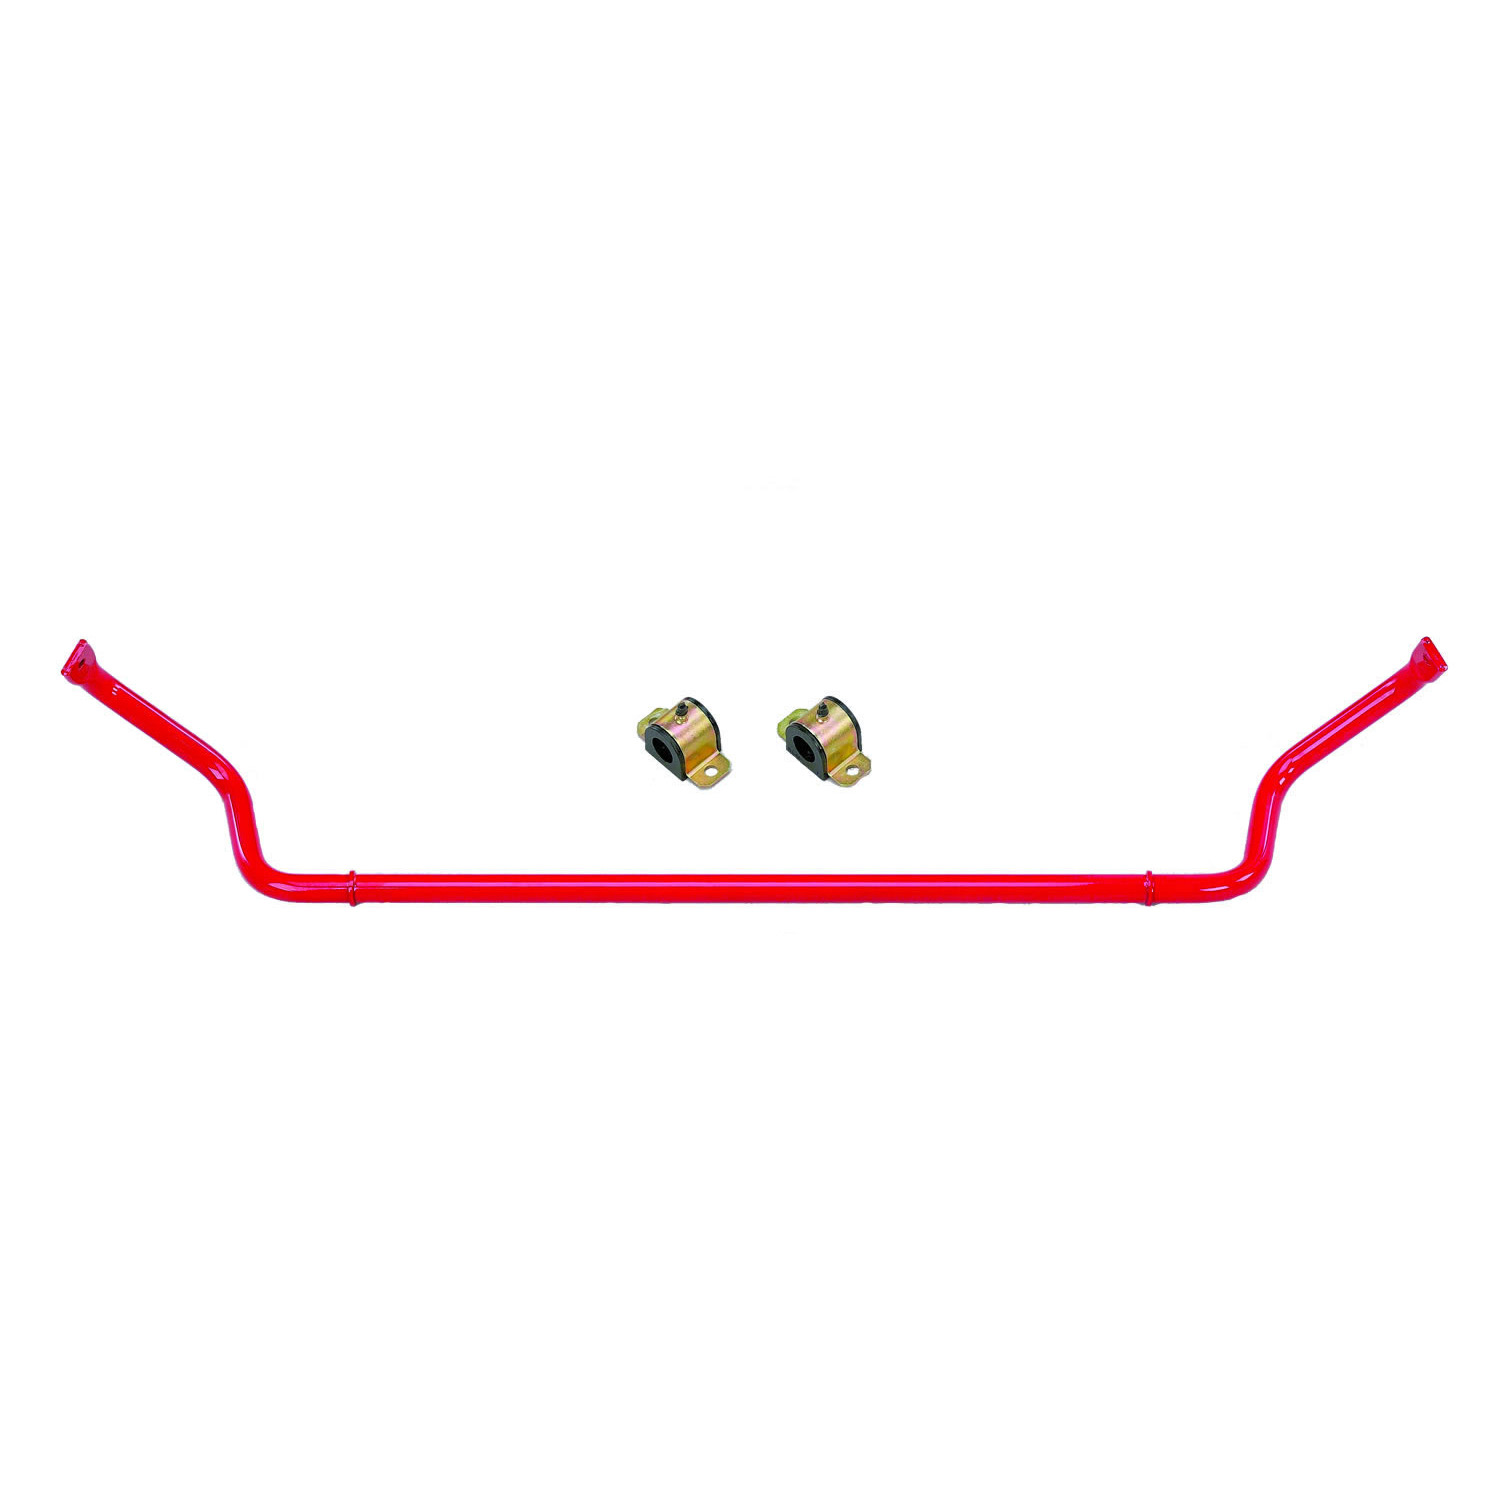 Scion TC Sport Rear Sway Bar from Hotchkis Sport Suspension